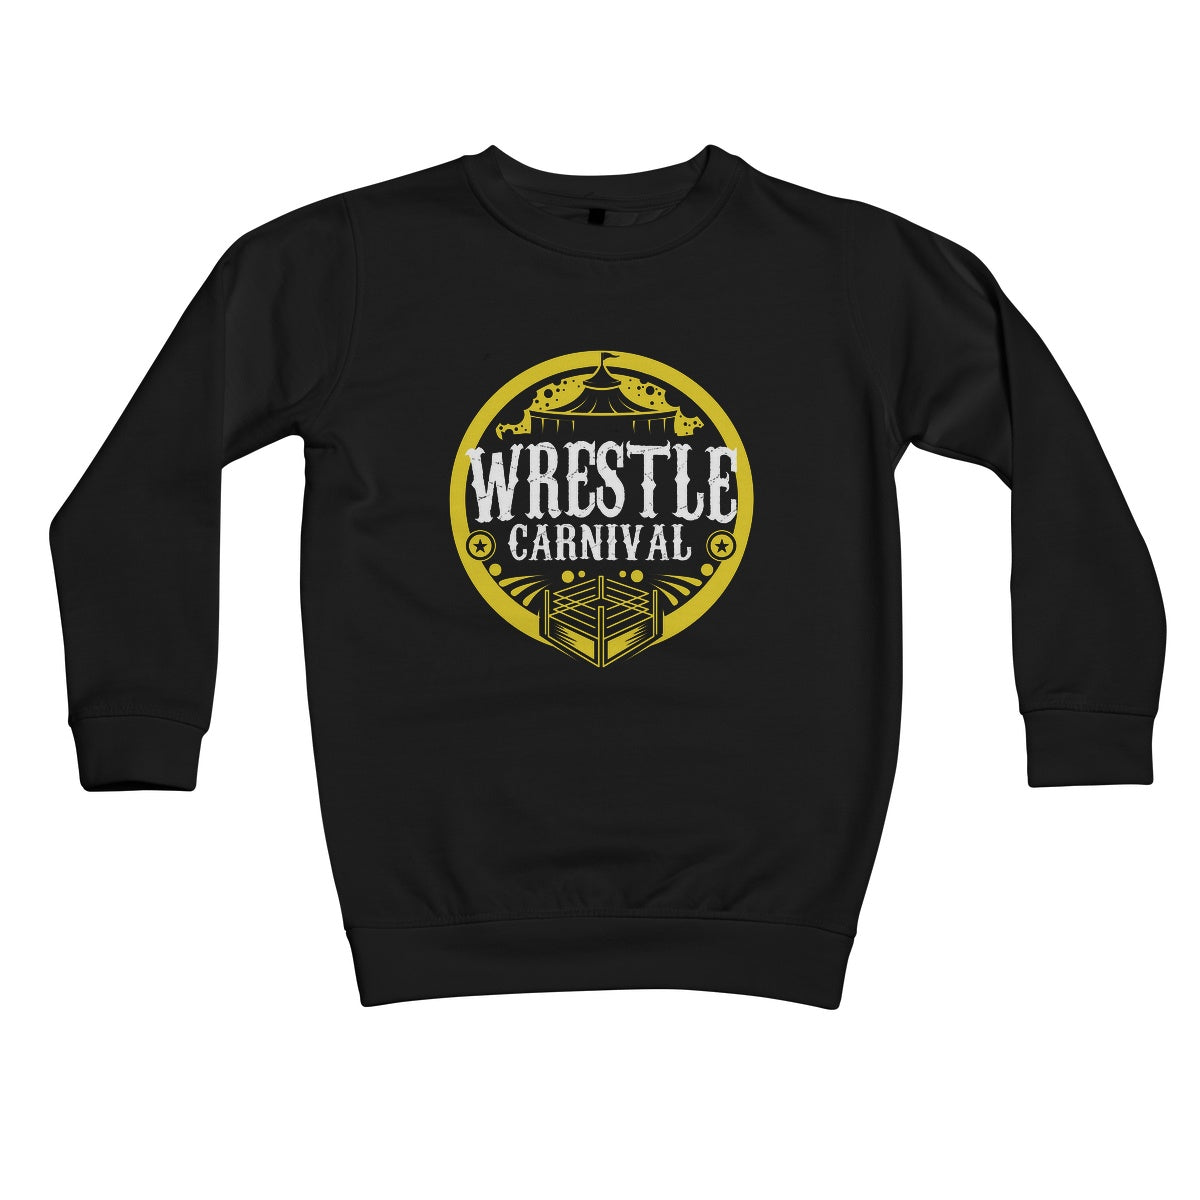 Wrestle Carnival Gold Logo Kids Retail Sweatshirt